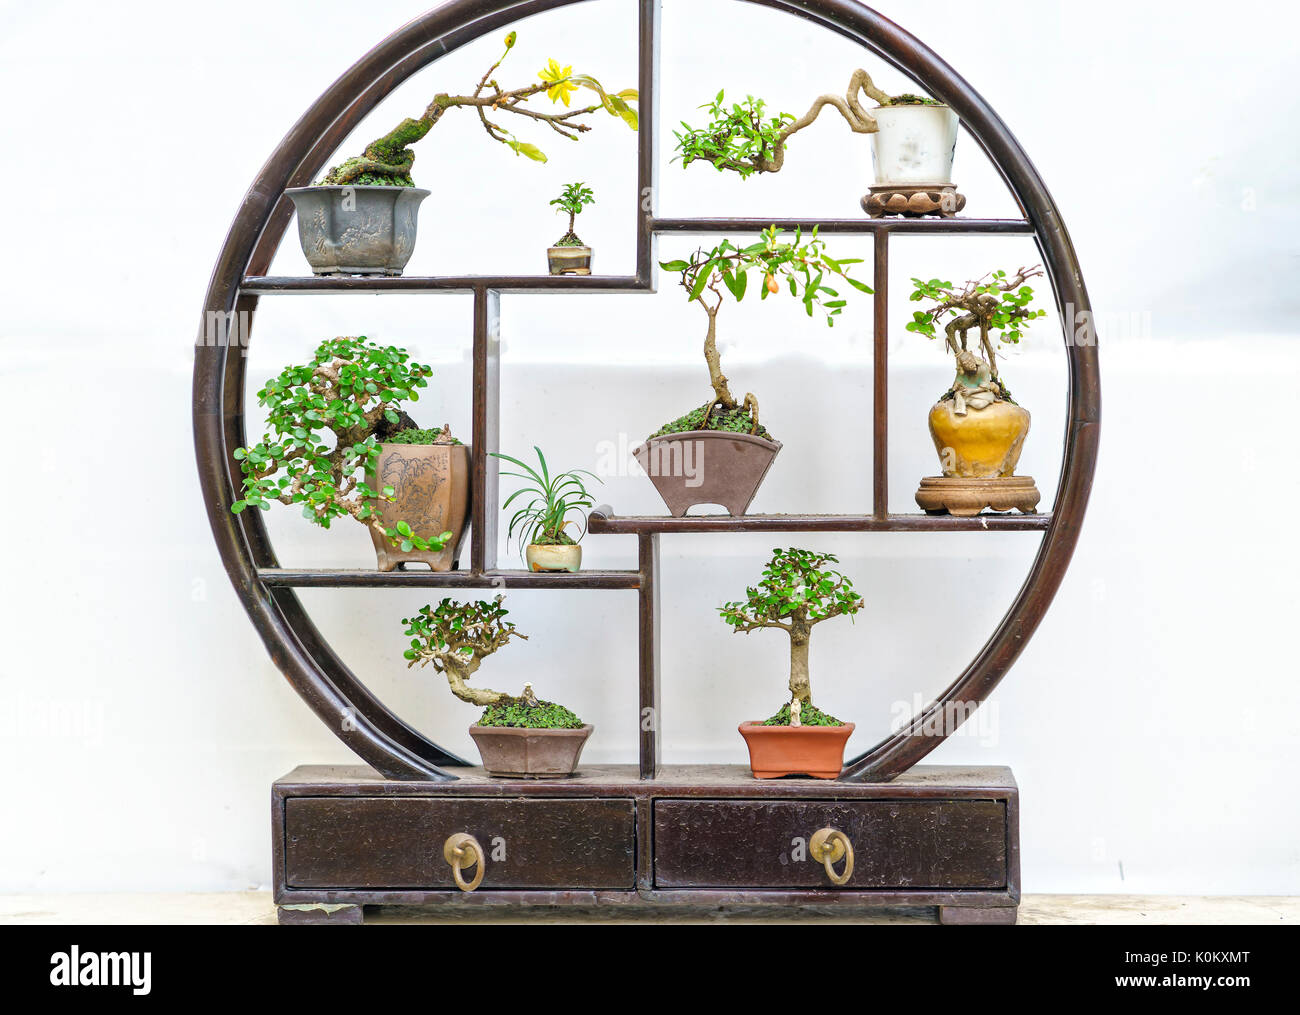 Miniatures Bonsai Pots In Decorative Circular Wooden Frame In The Stock Photo Alamy